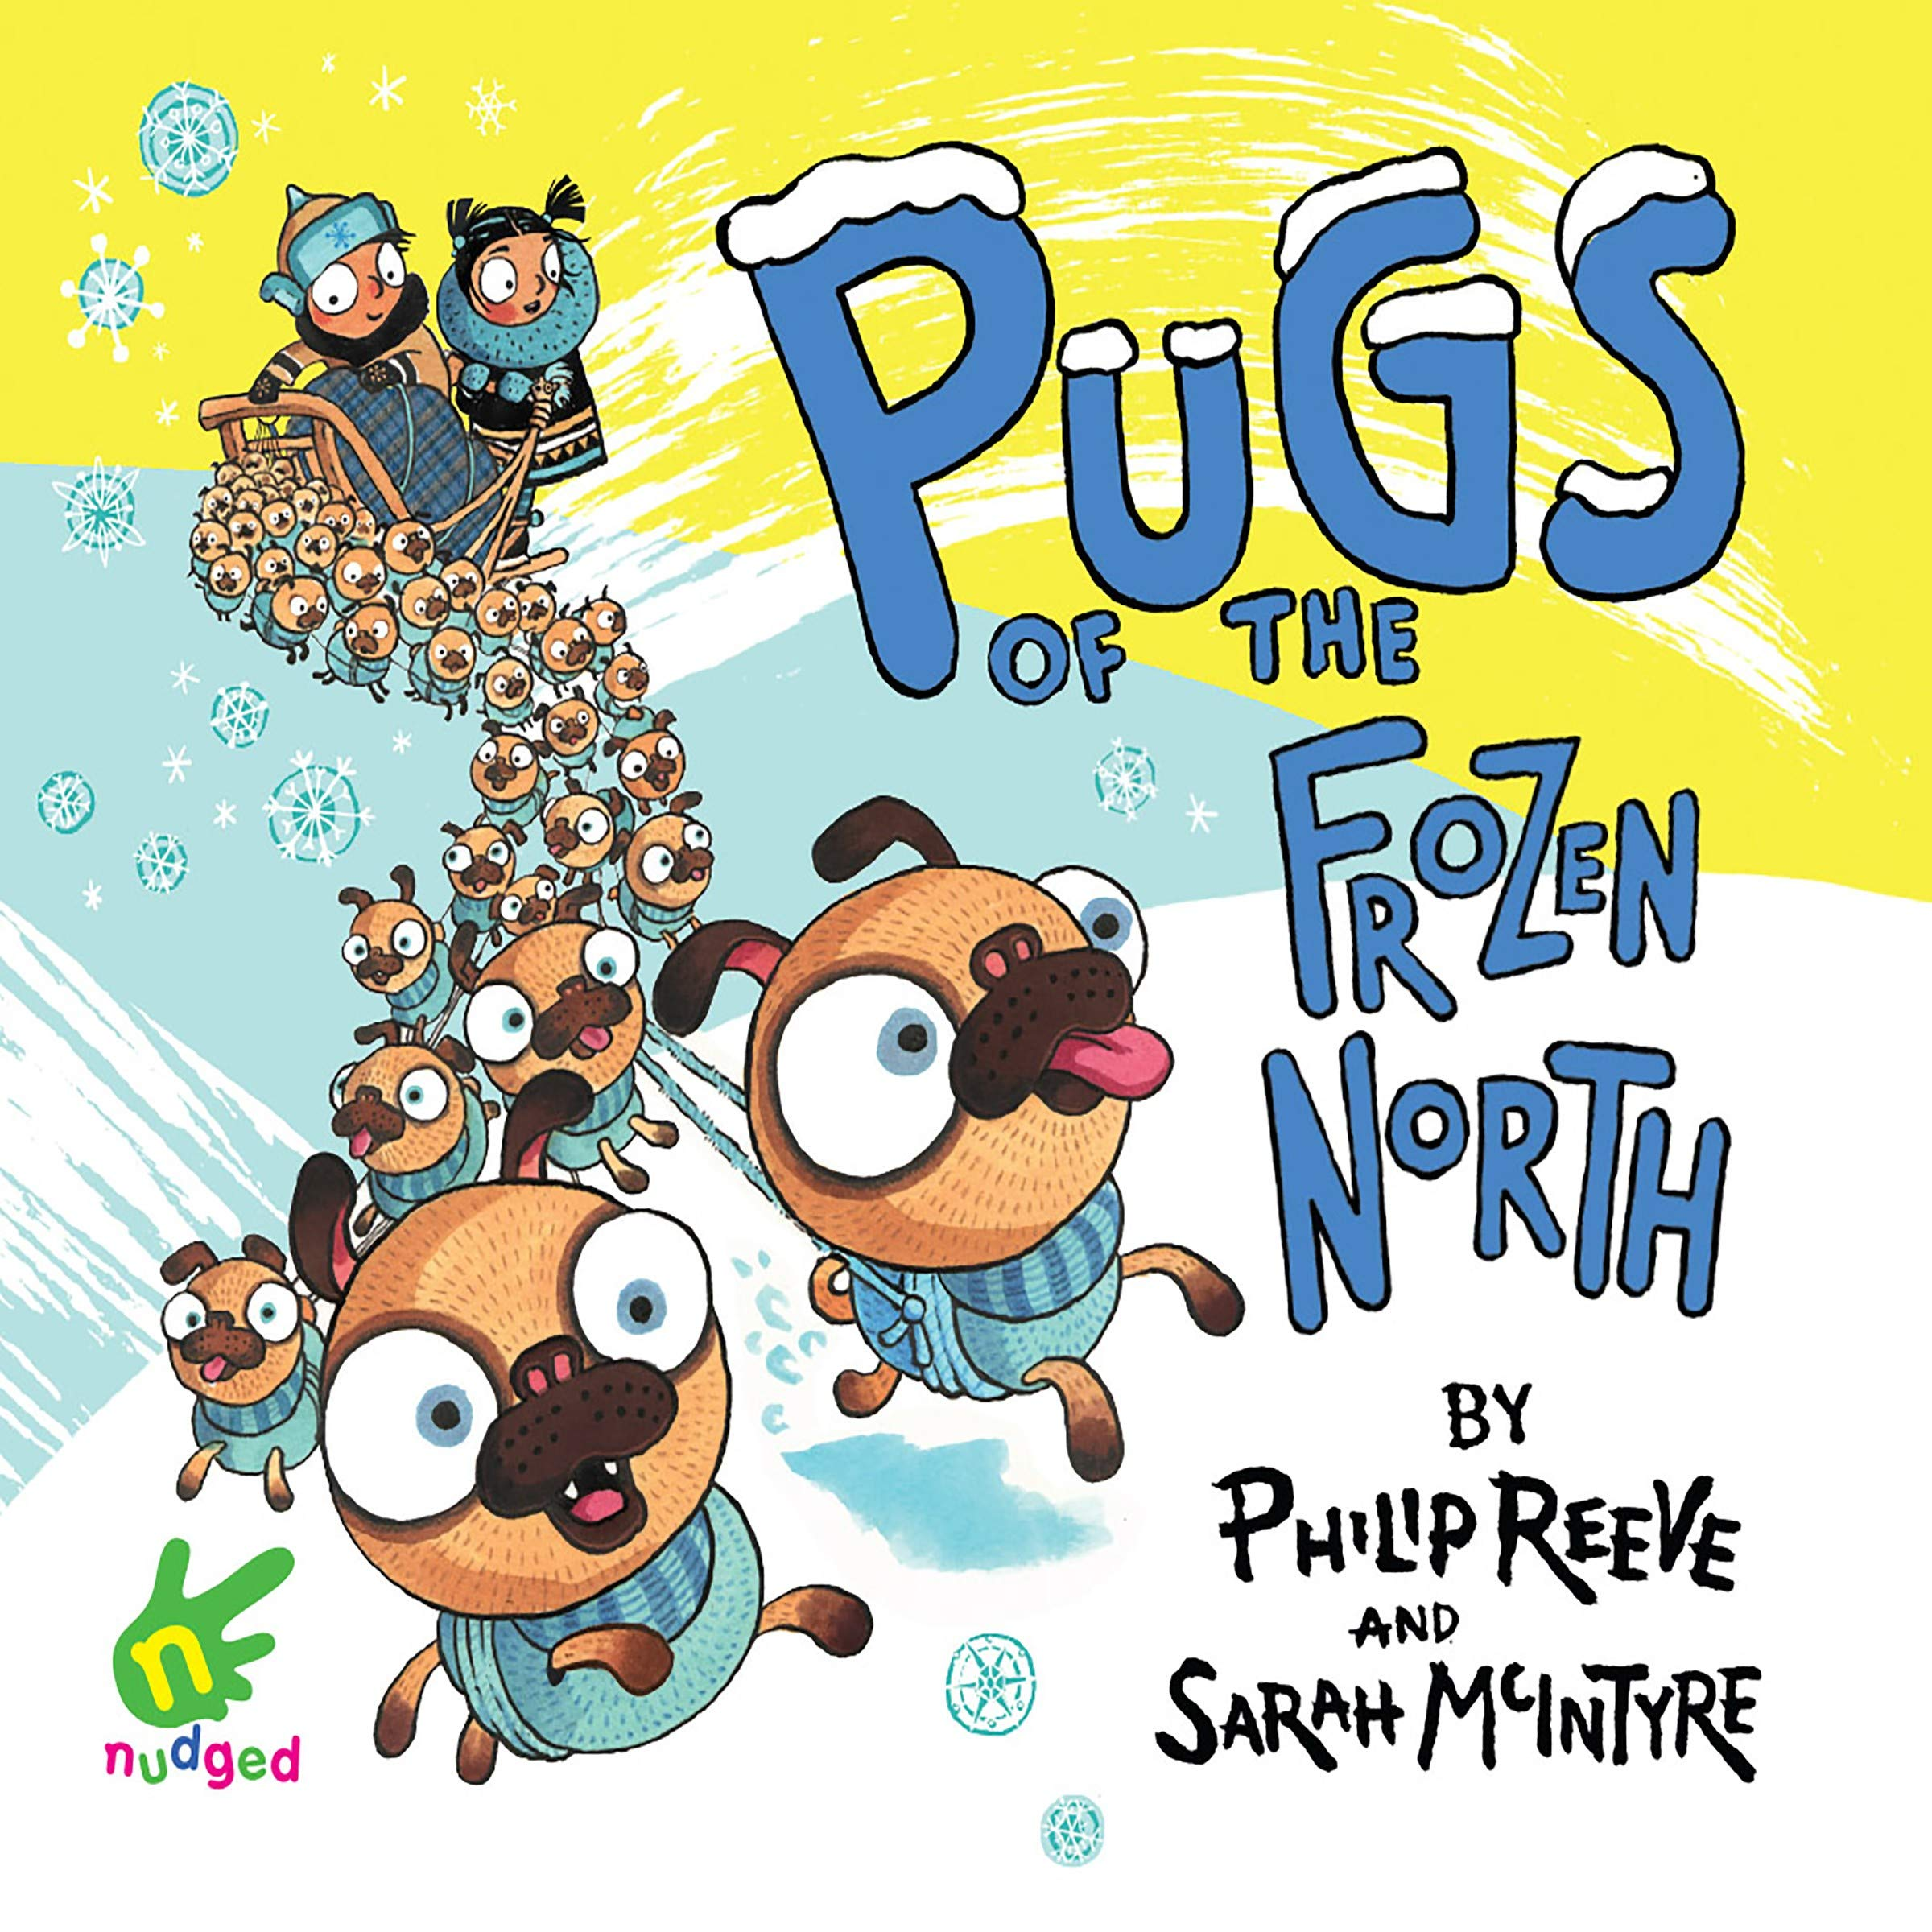 Pugs of the Frozen North: Amazon.co.uk: Philip Reeve: 9781510024298: Books